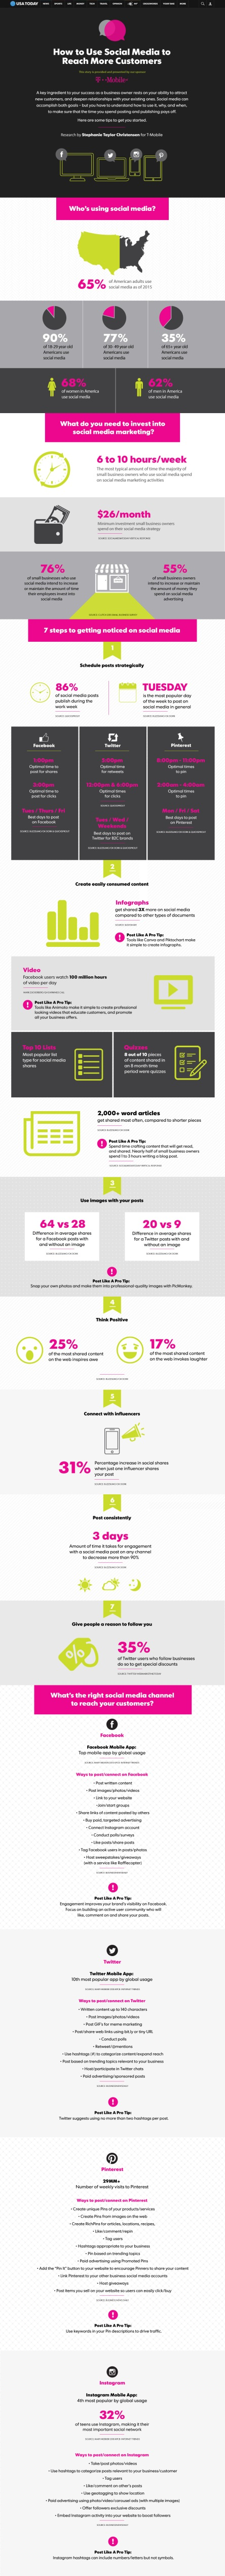 T-Mobile_infographics_Social-Media-Static_design v2.jpg